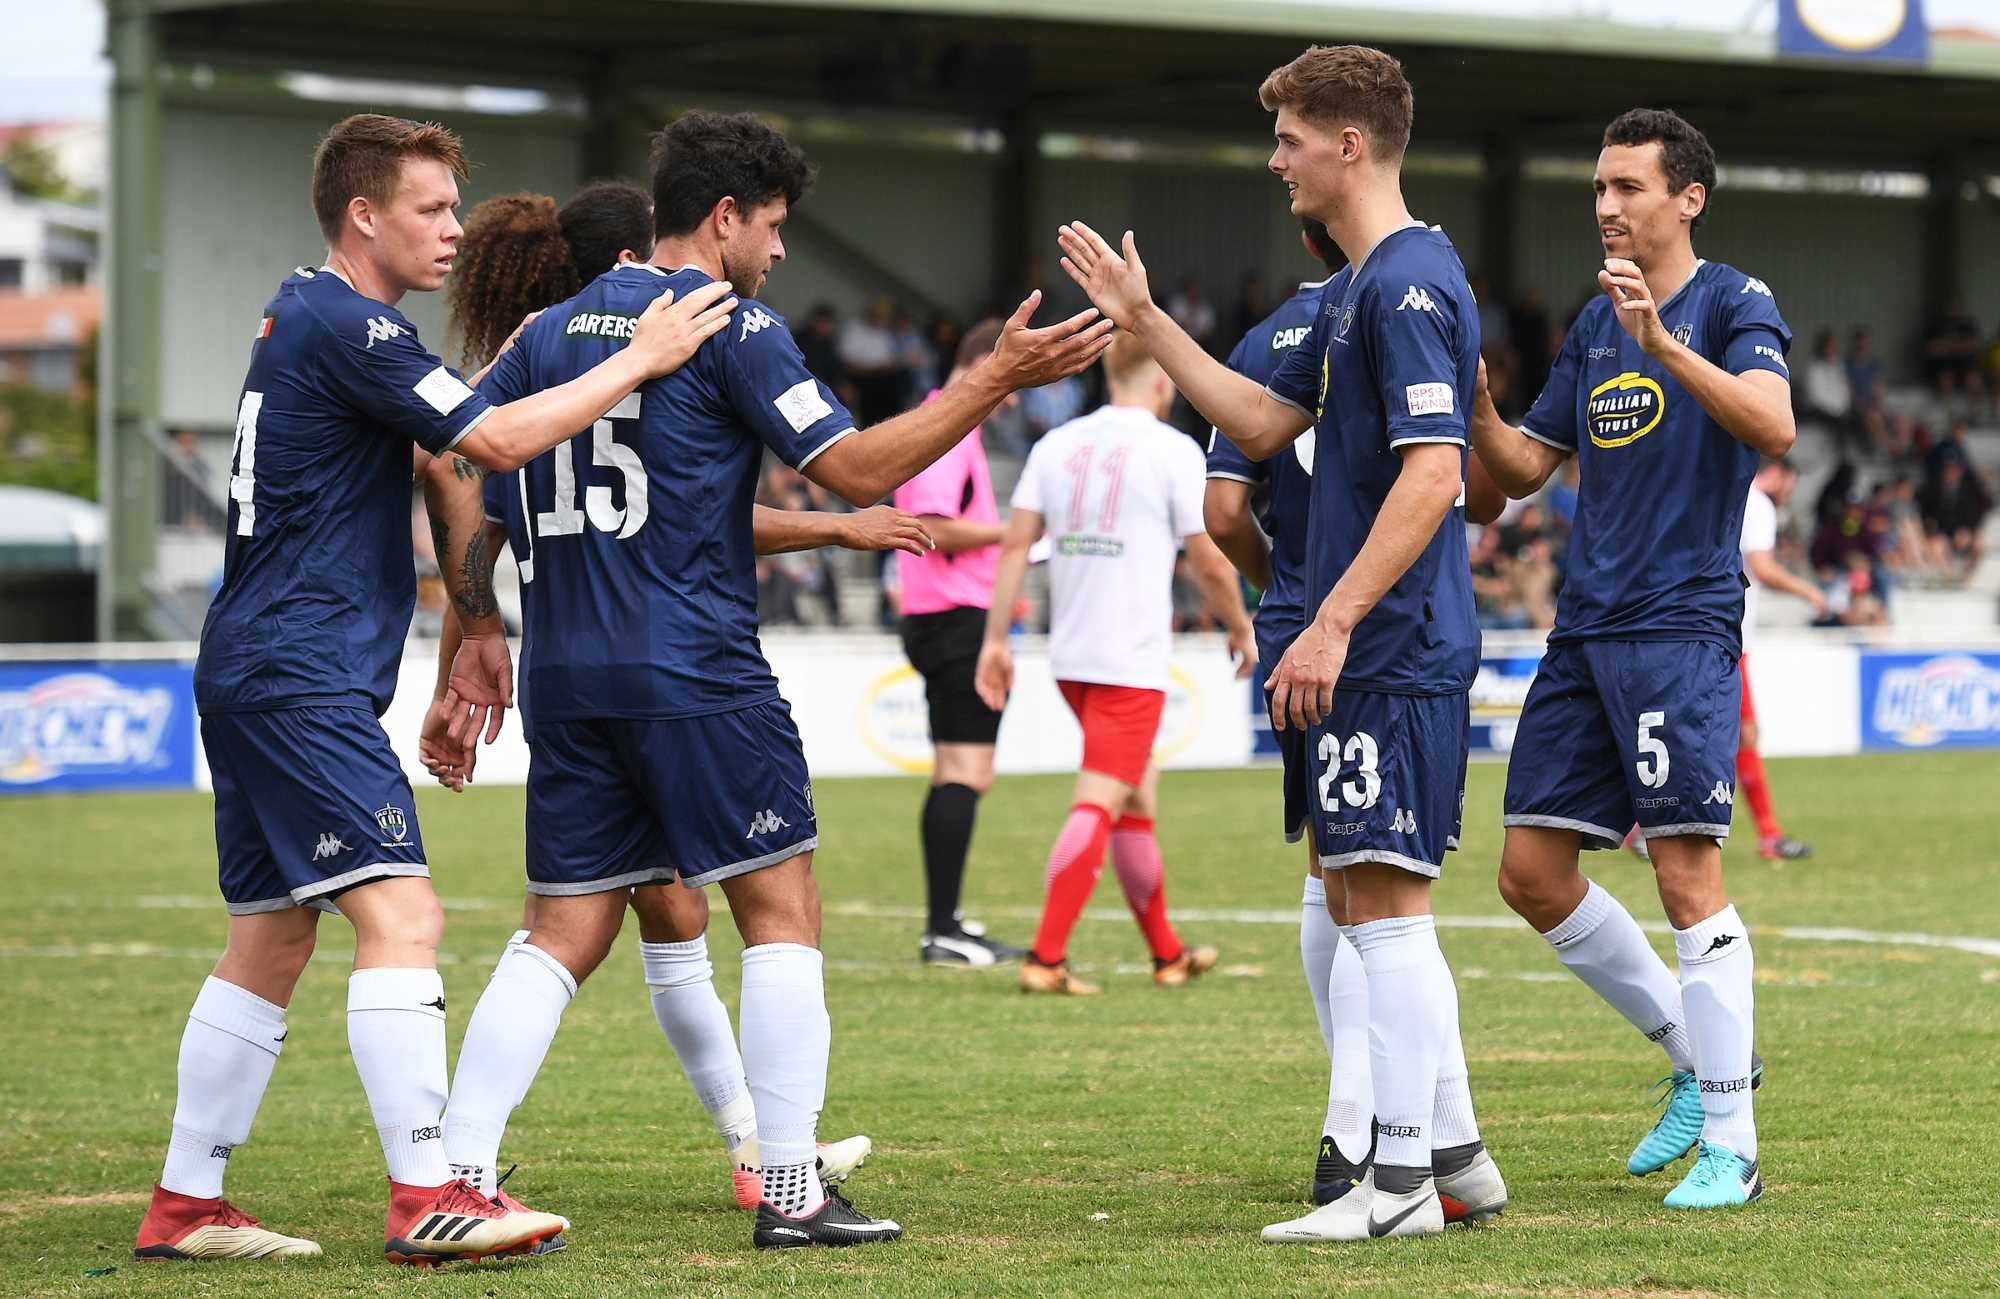 Navy Blues Go Clear At The Top